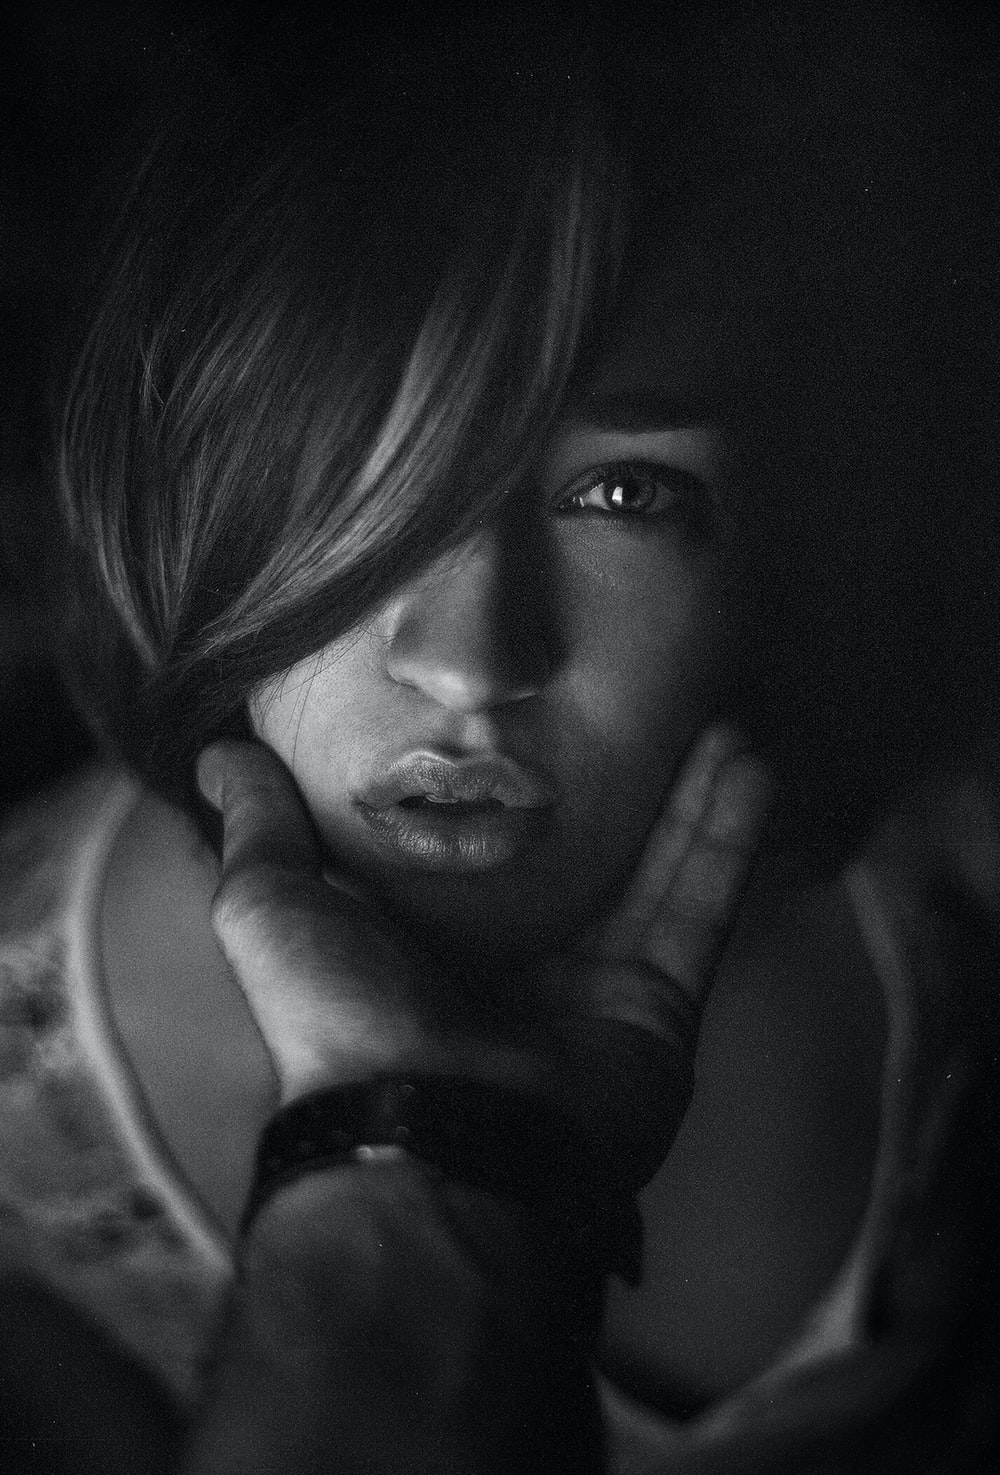 grayscale photo of woman with hand on her face